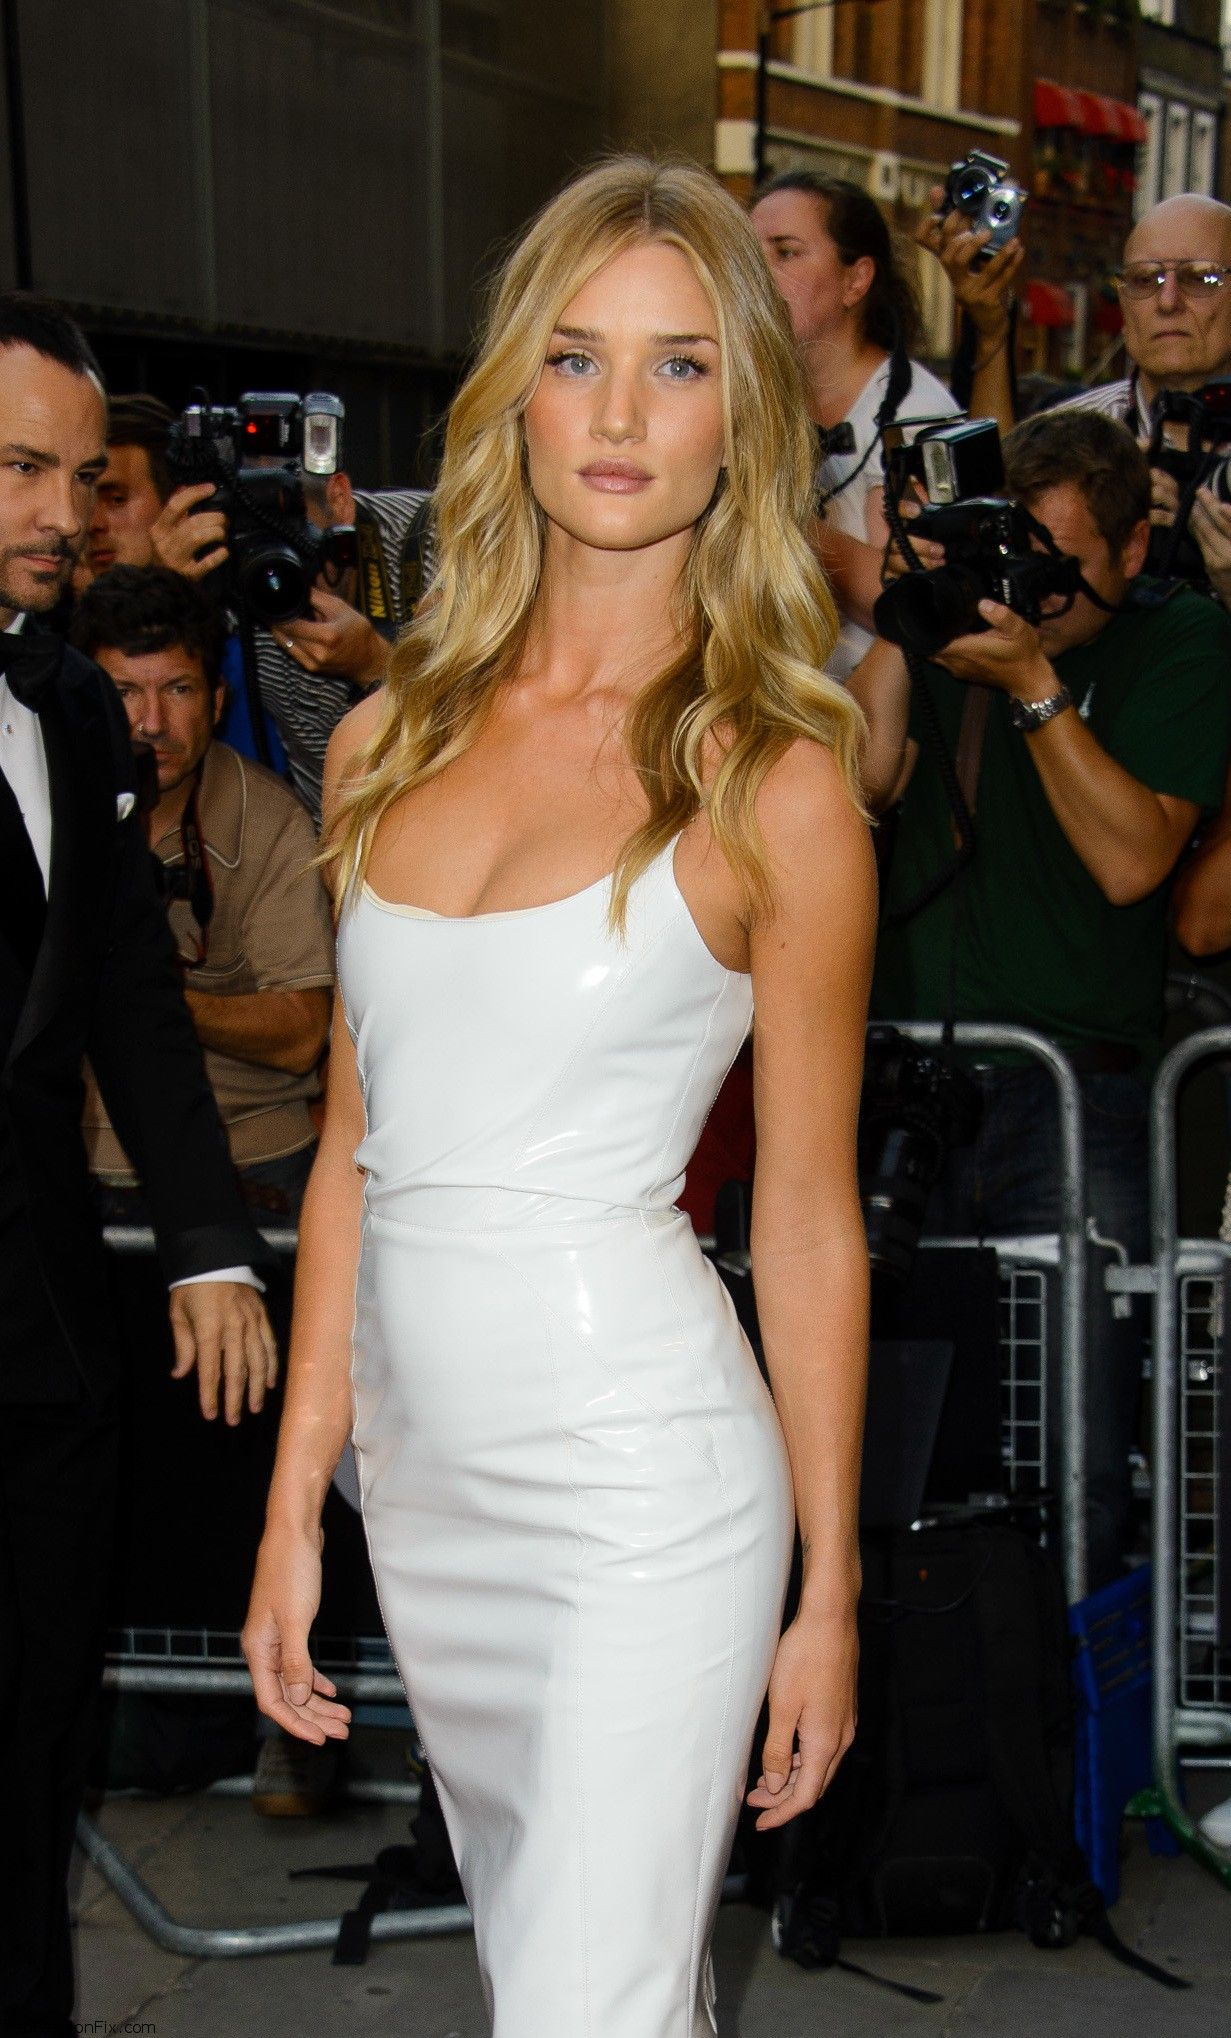 celebrity-paradise.com-The Elder-Rosie Huntington-Whiteley _10_